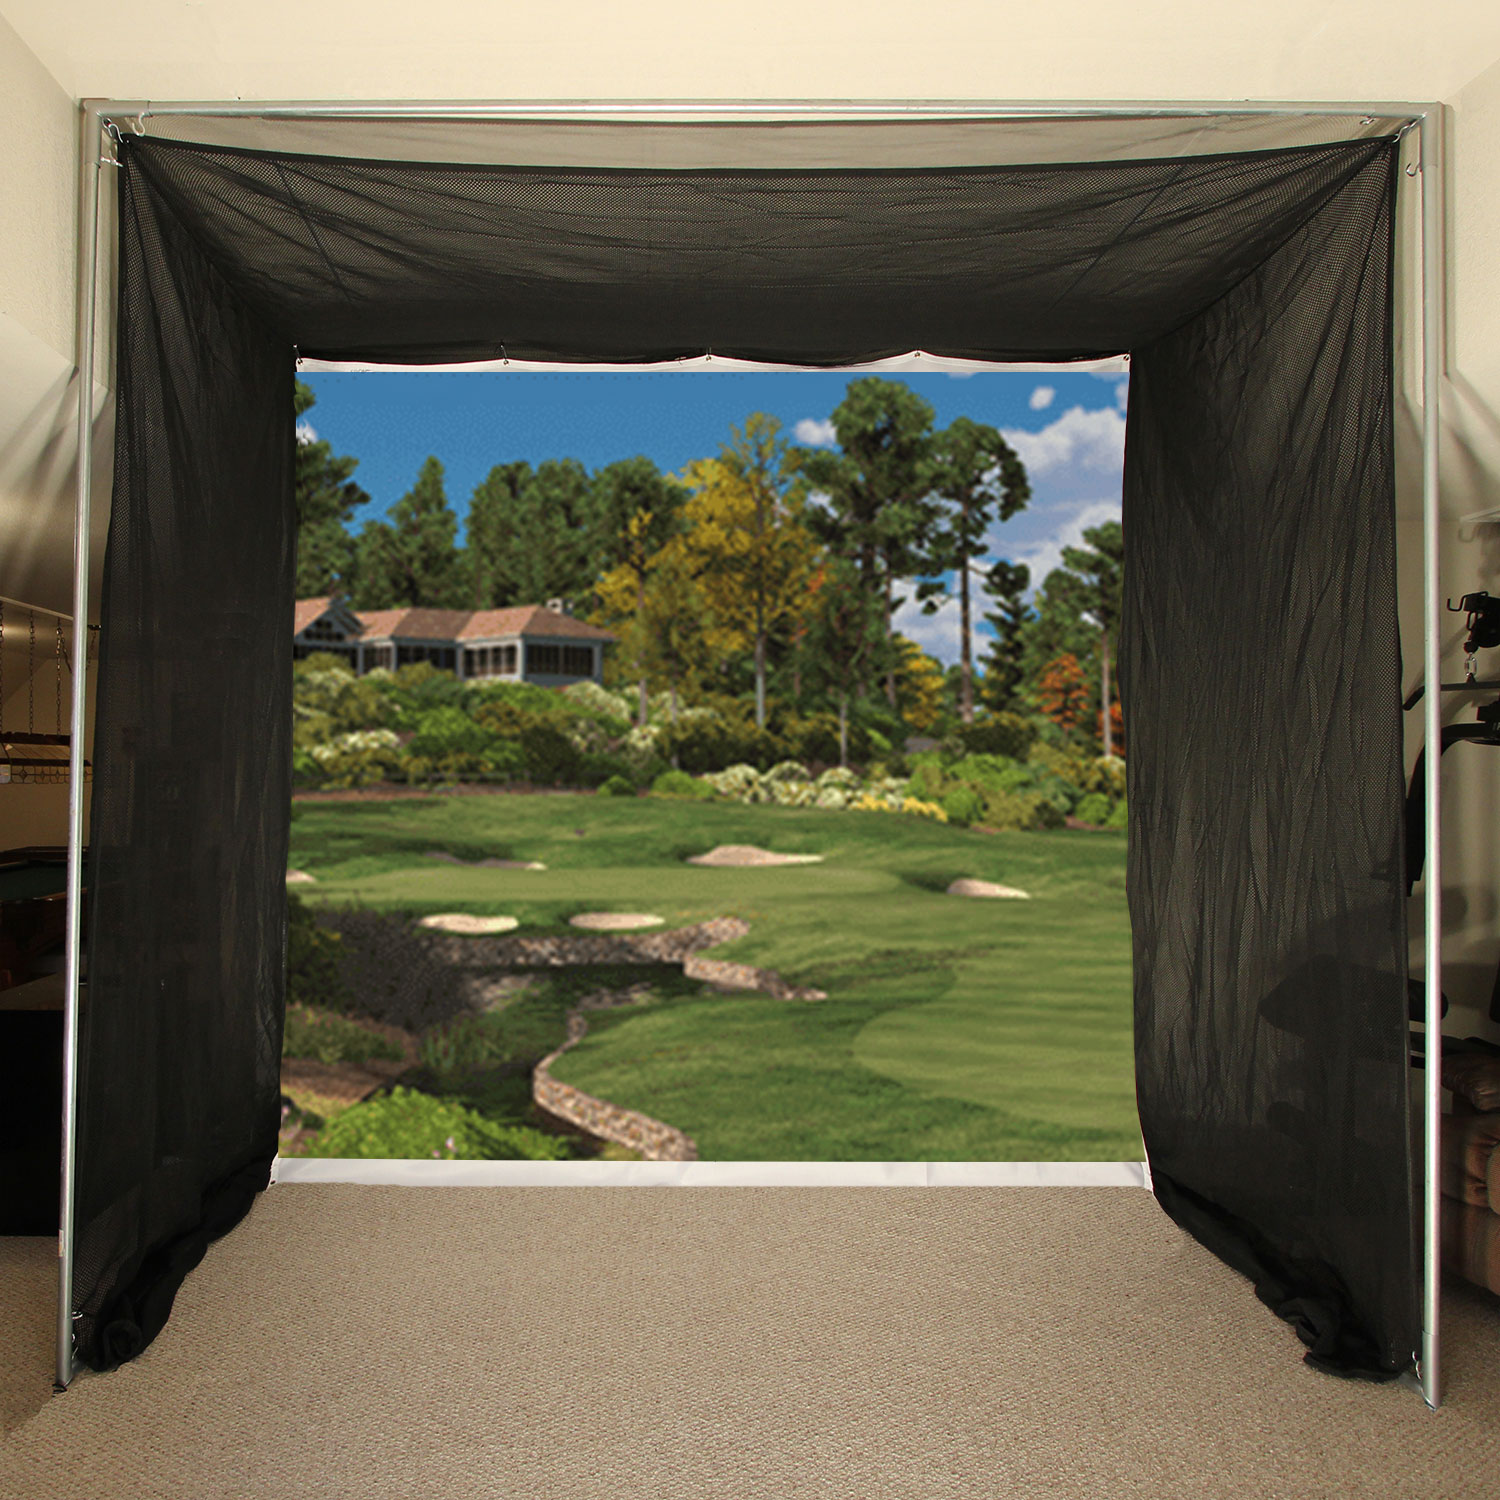 Packaging or Promotional image for Cimarron 5x10x10 Tour Simulator Archery Golf Net with Complete Frame